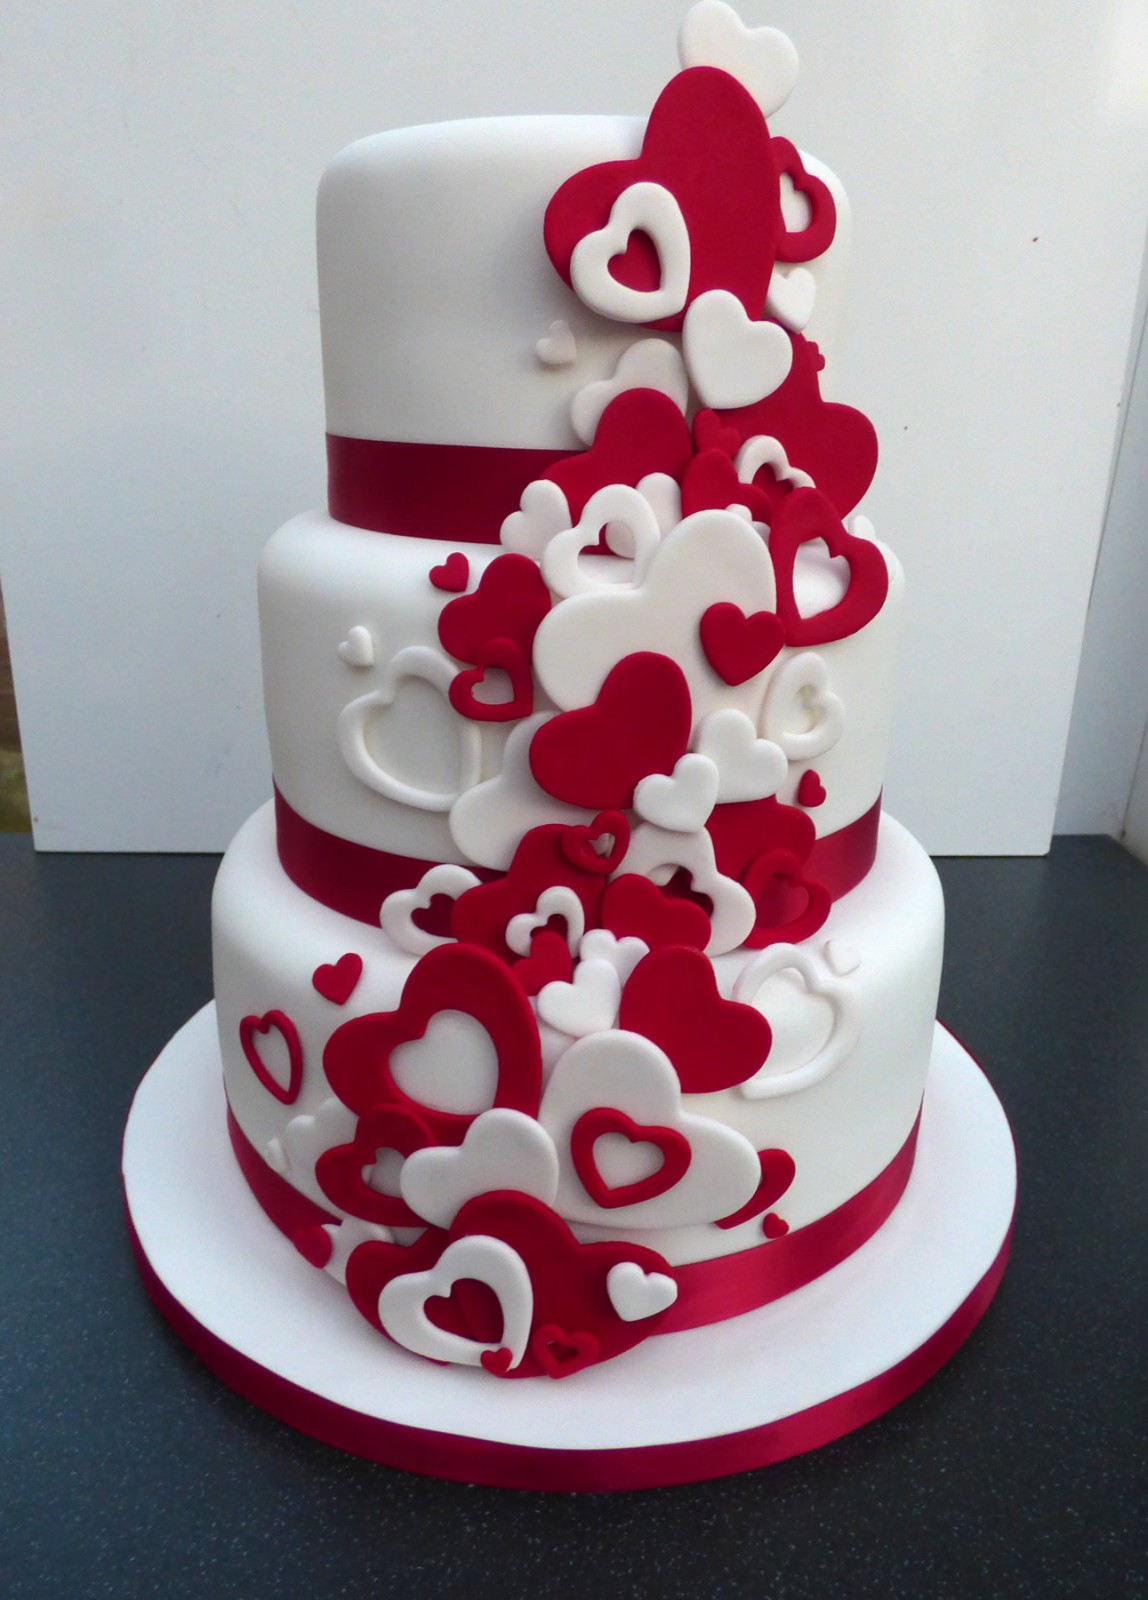 Red Date Cake